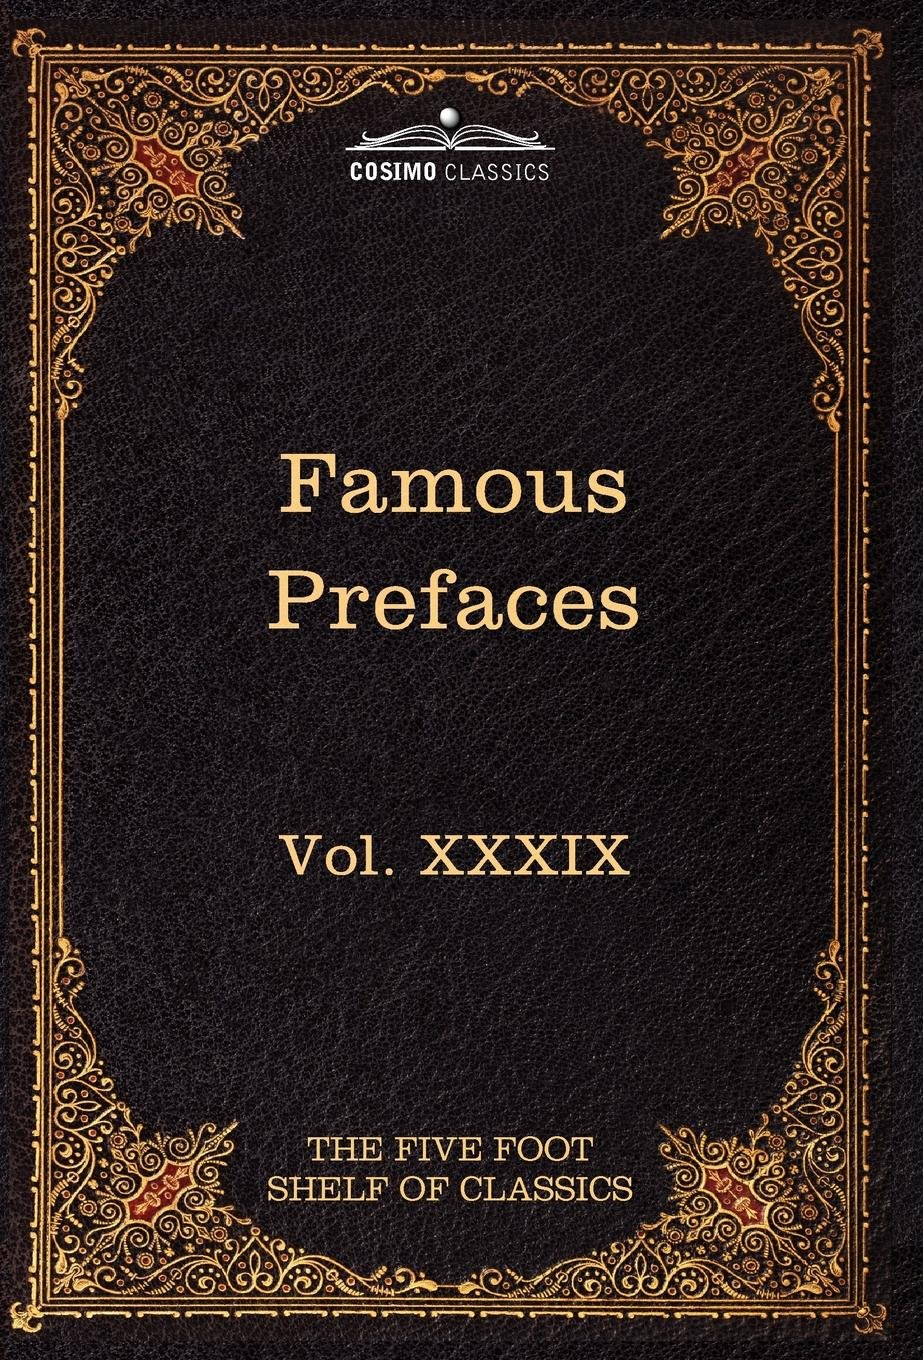 Prefaces and Prologues to Famous Books: The Five Foot Shelf of Classics, Vol. XXXIX (in 51 Volumes) pdf